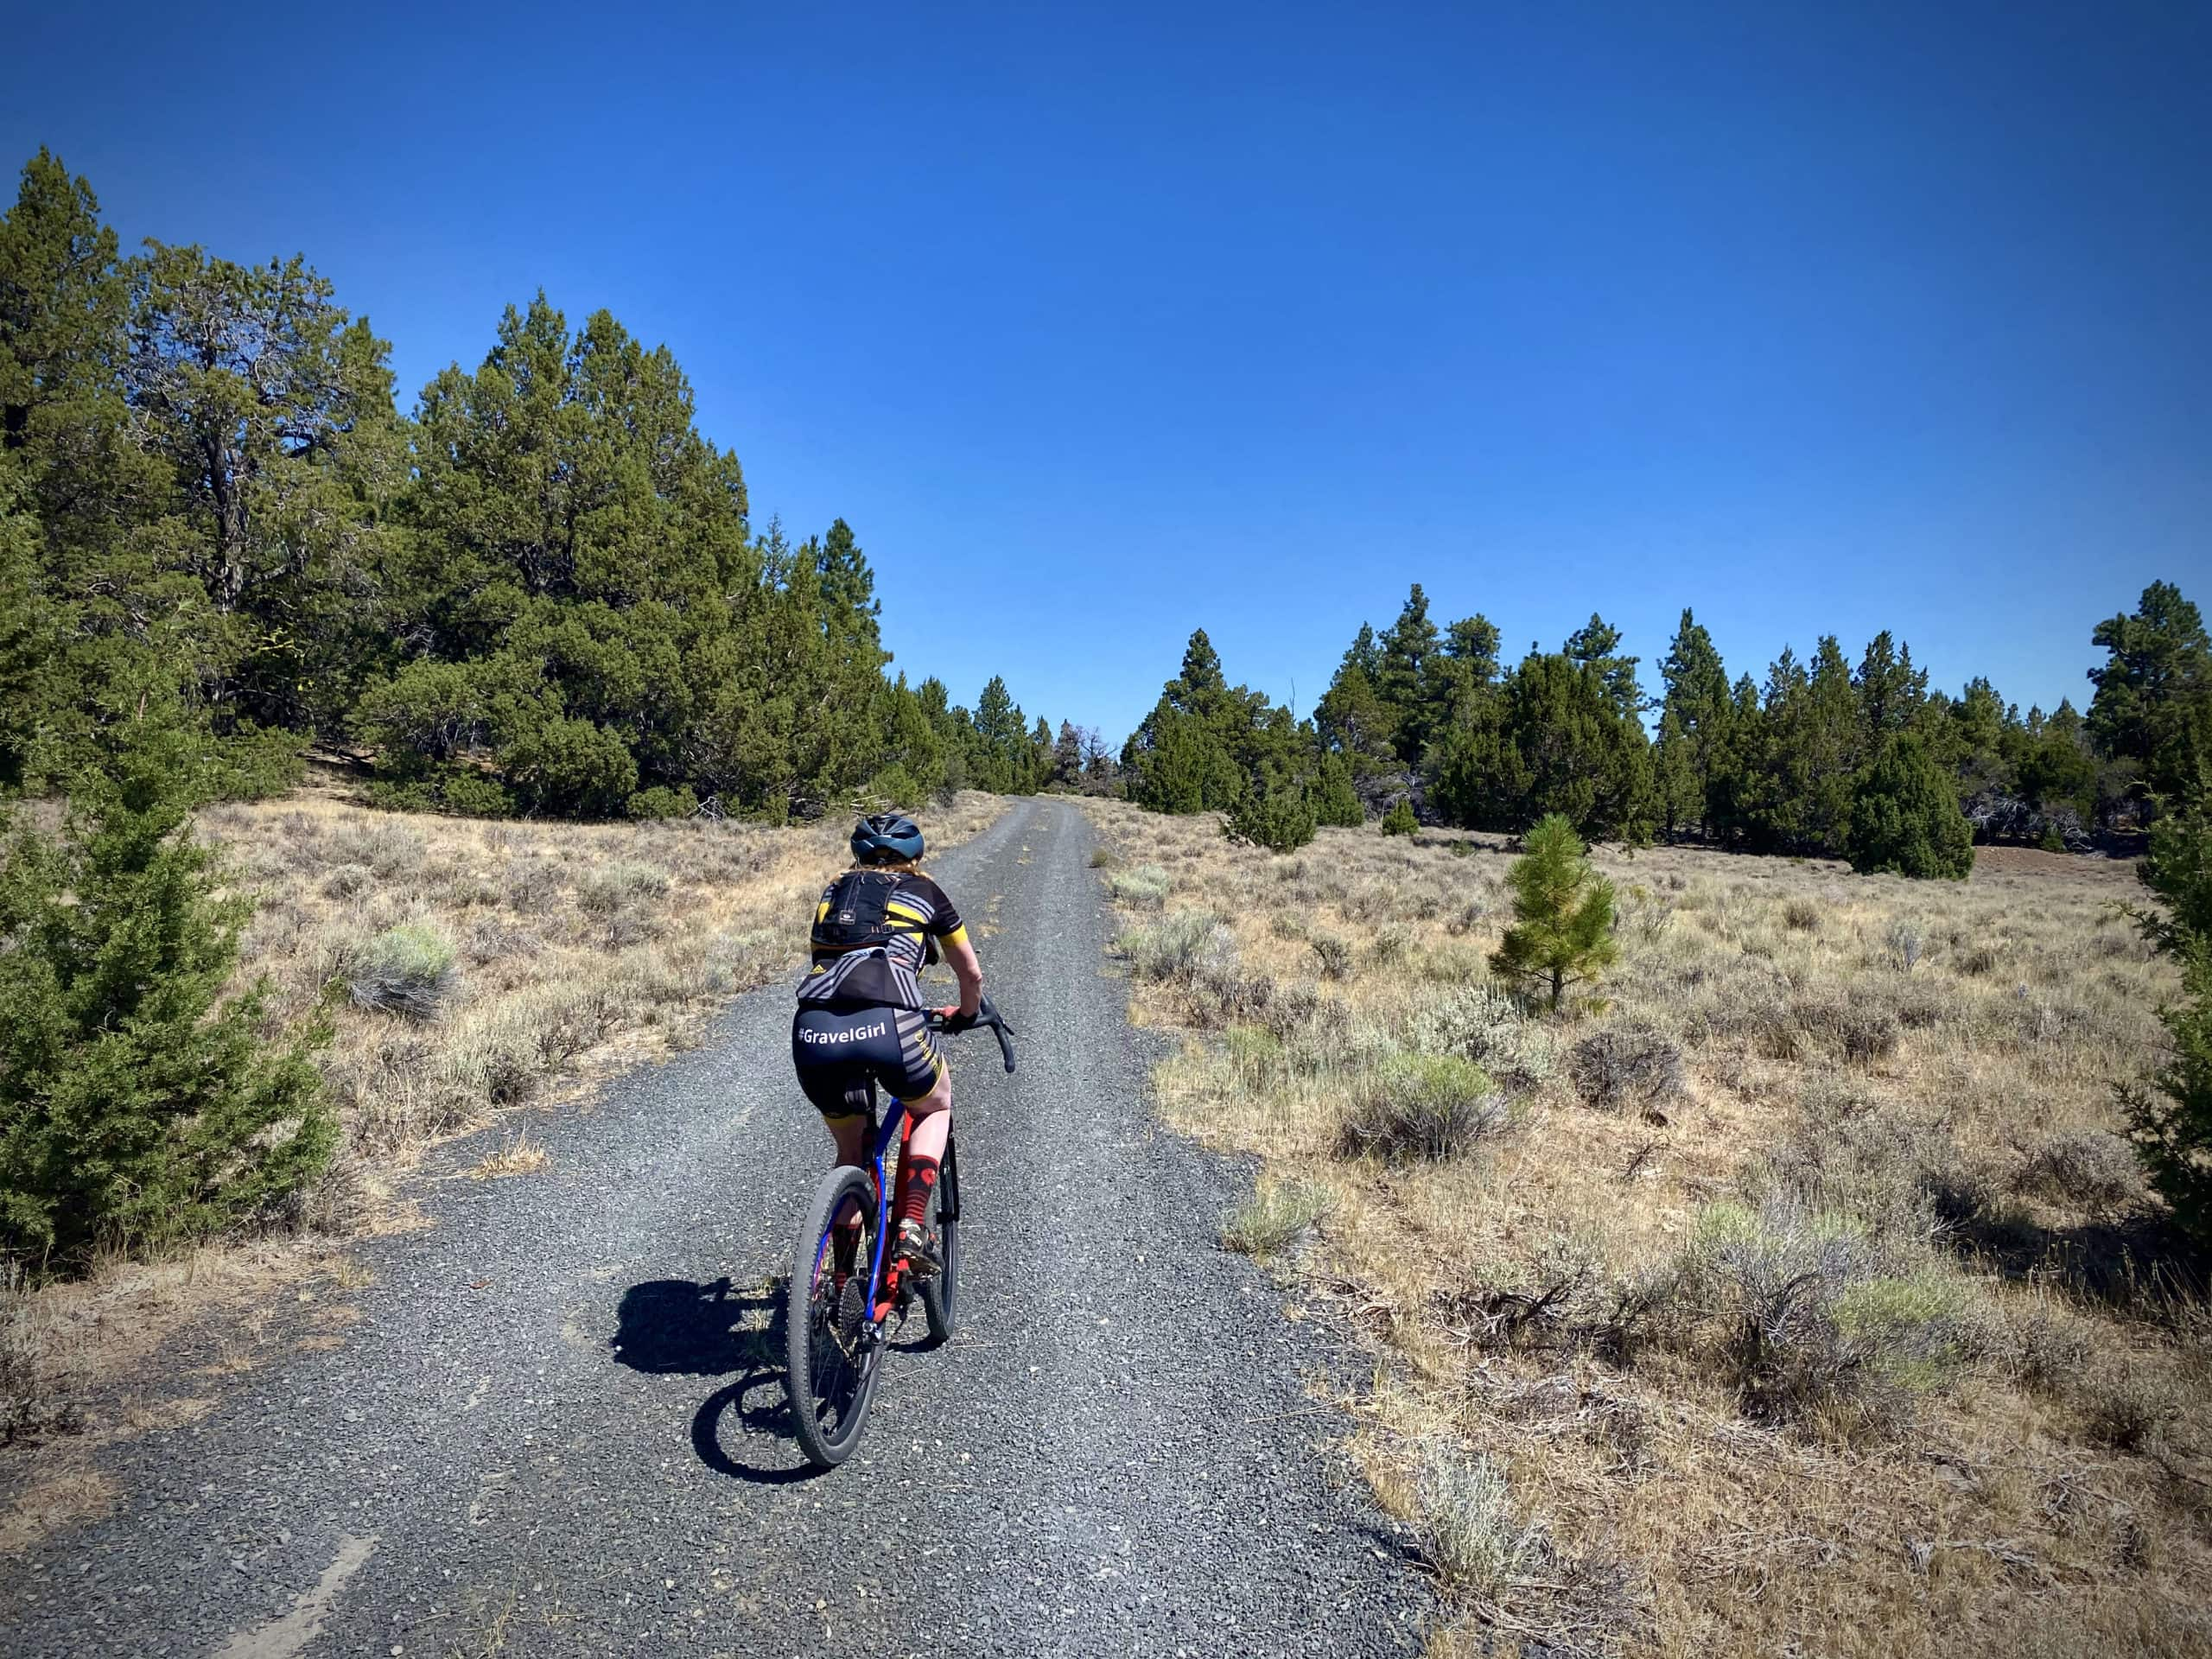 Gravel cyclist making the the turn towards Avery Pass on gravel road near Paisley, Oregon.